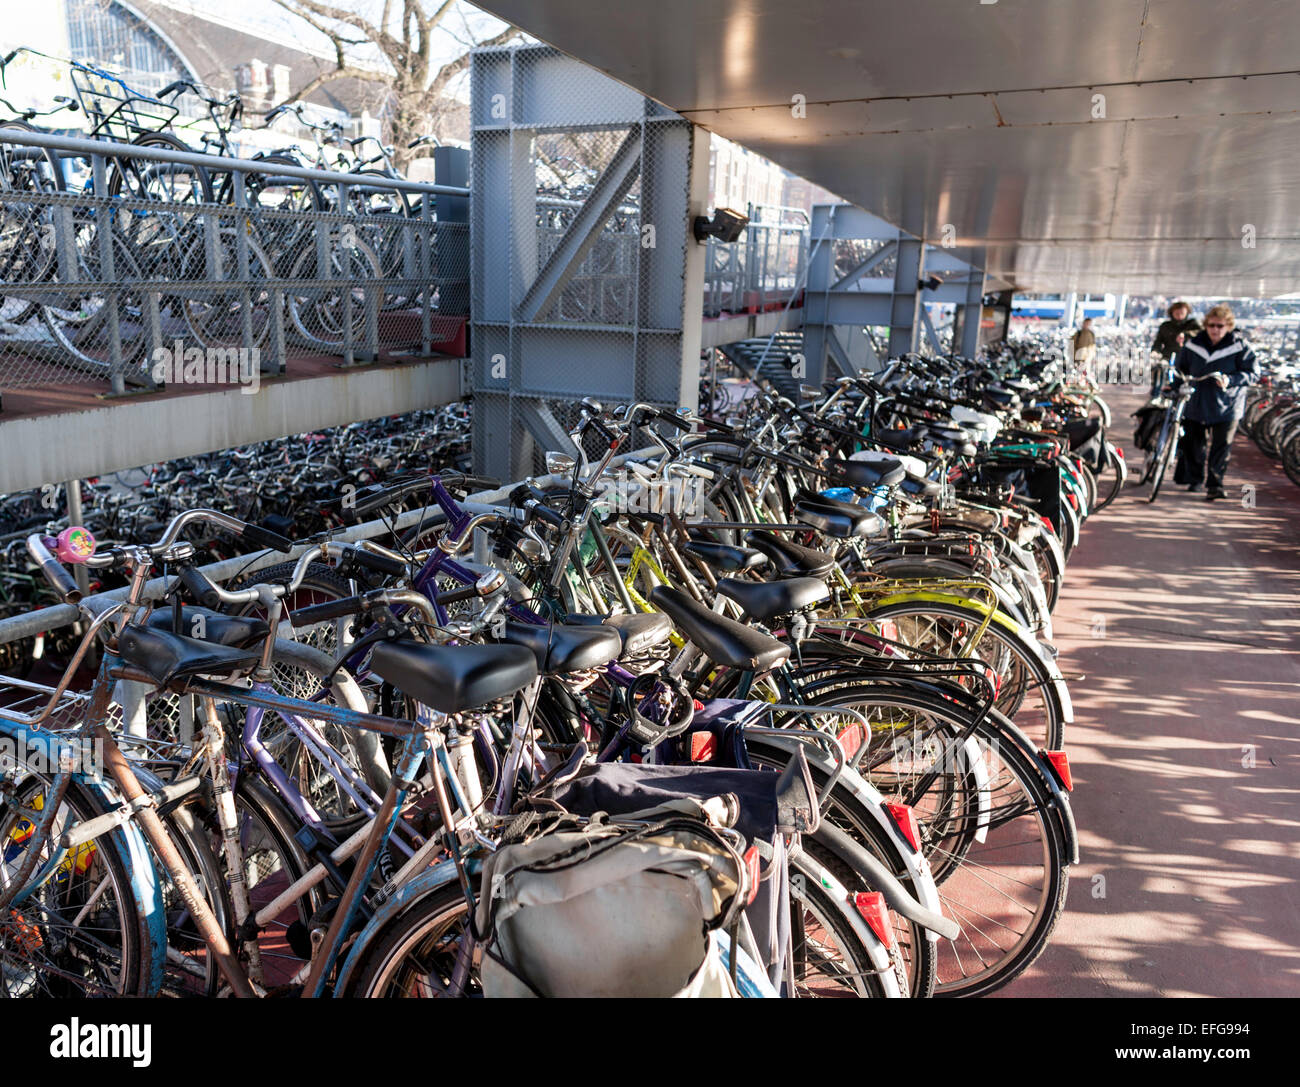 Multistory bicycle parking garage near Central Station, Amsterdam, The Netherlands - Stock Image